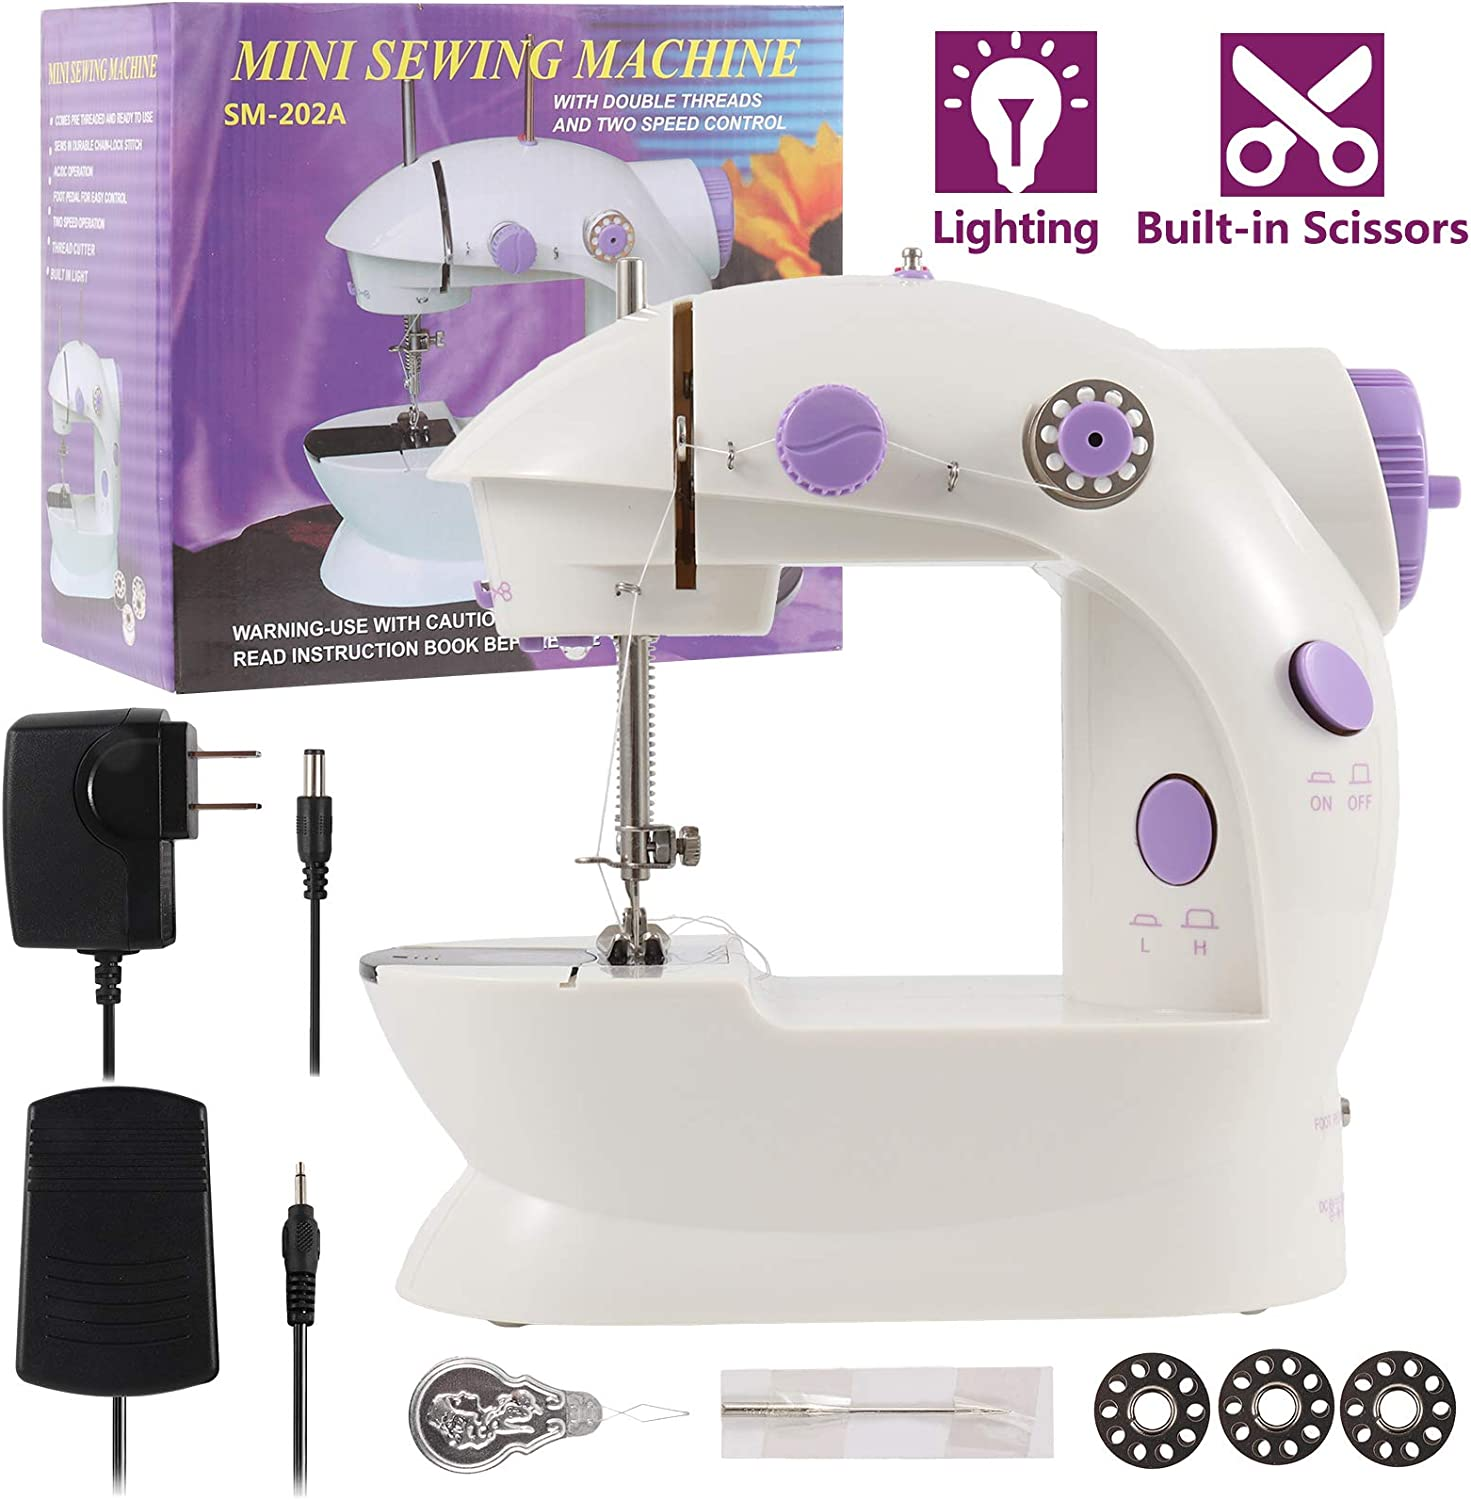 WIOR Mini Sewing Machine for Beginners, Adjustable 2-Speed Double-Thread Electric Sewing Machine, Portable Stitching Machine with Foot Padal, Thread Cutter, Night Light, Perfect for Home Travel Use